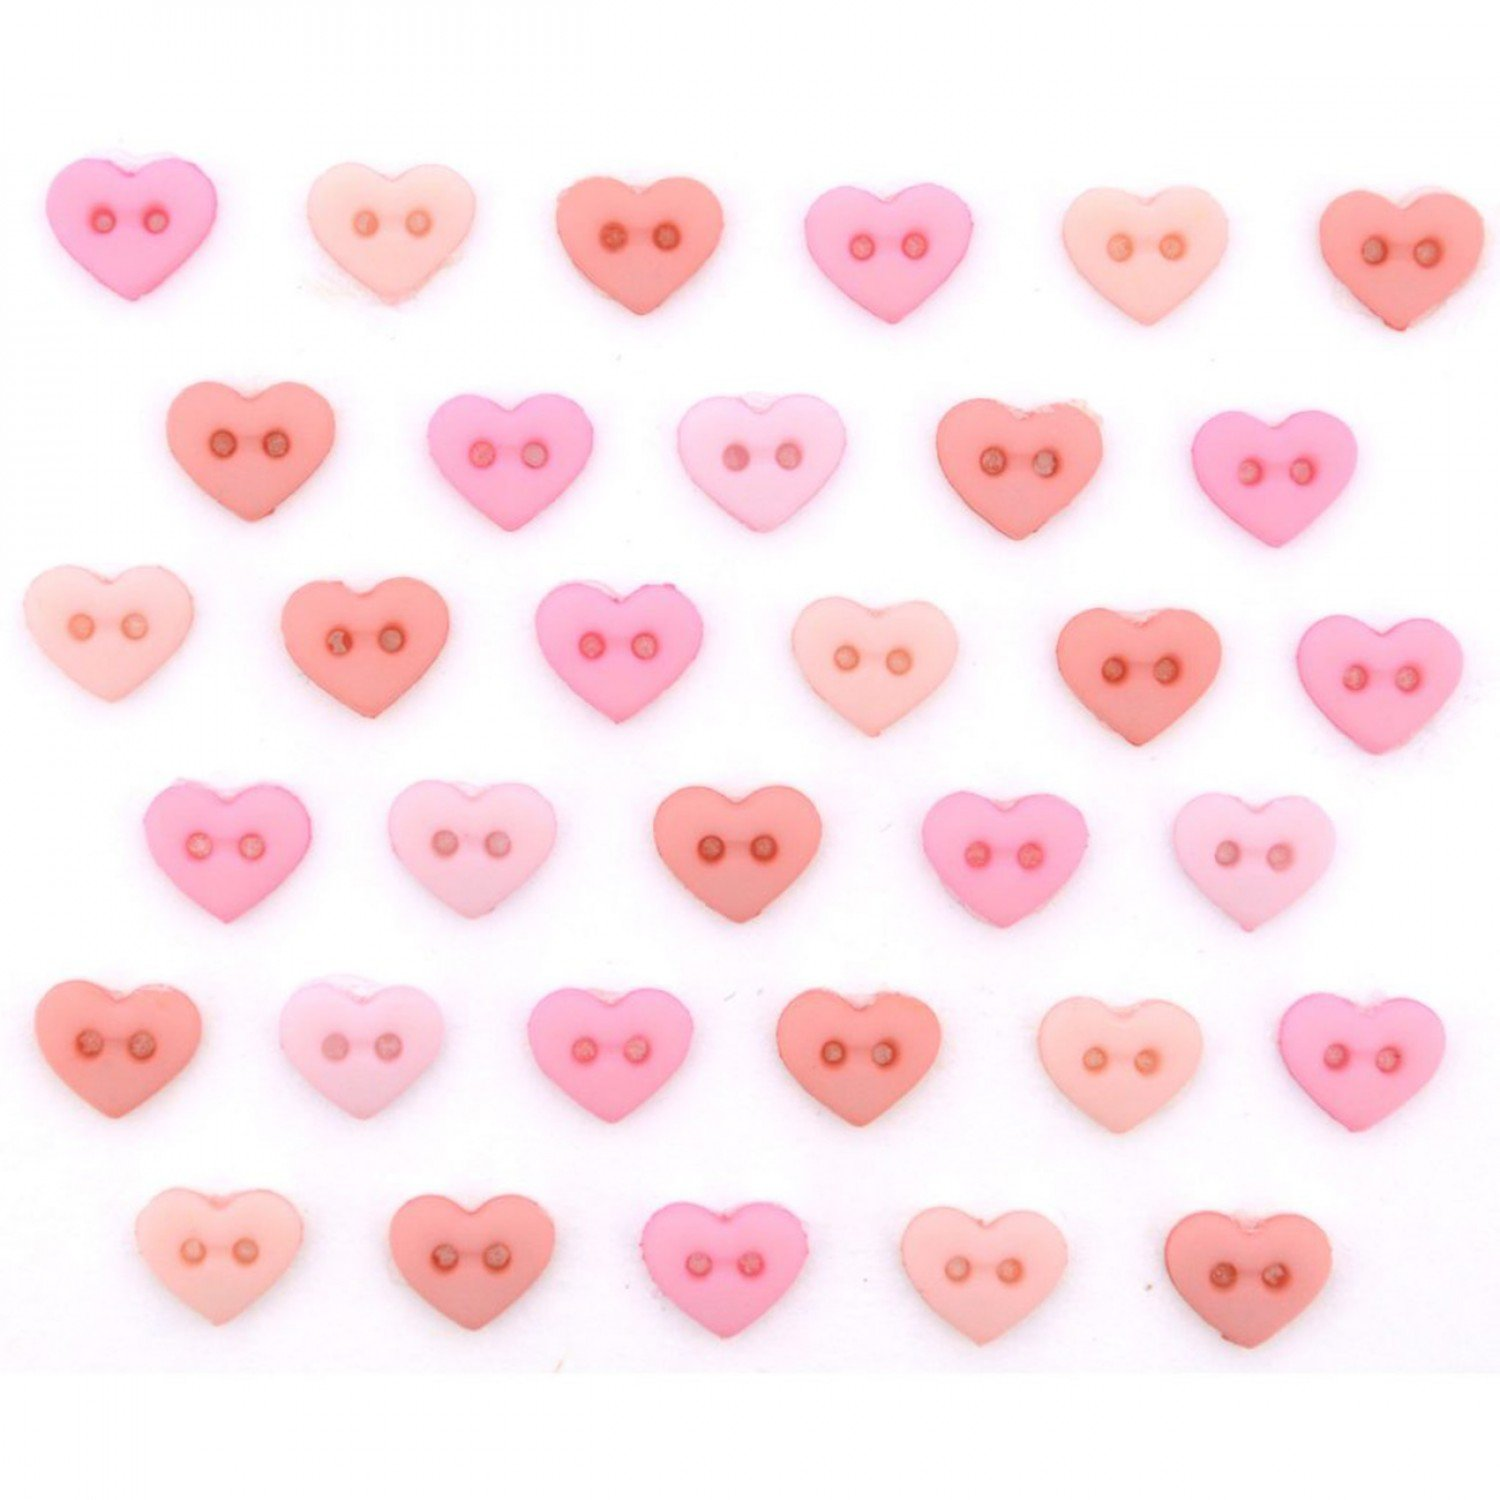 Micro Hearts Rose Buttons (30 Pieces)